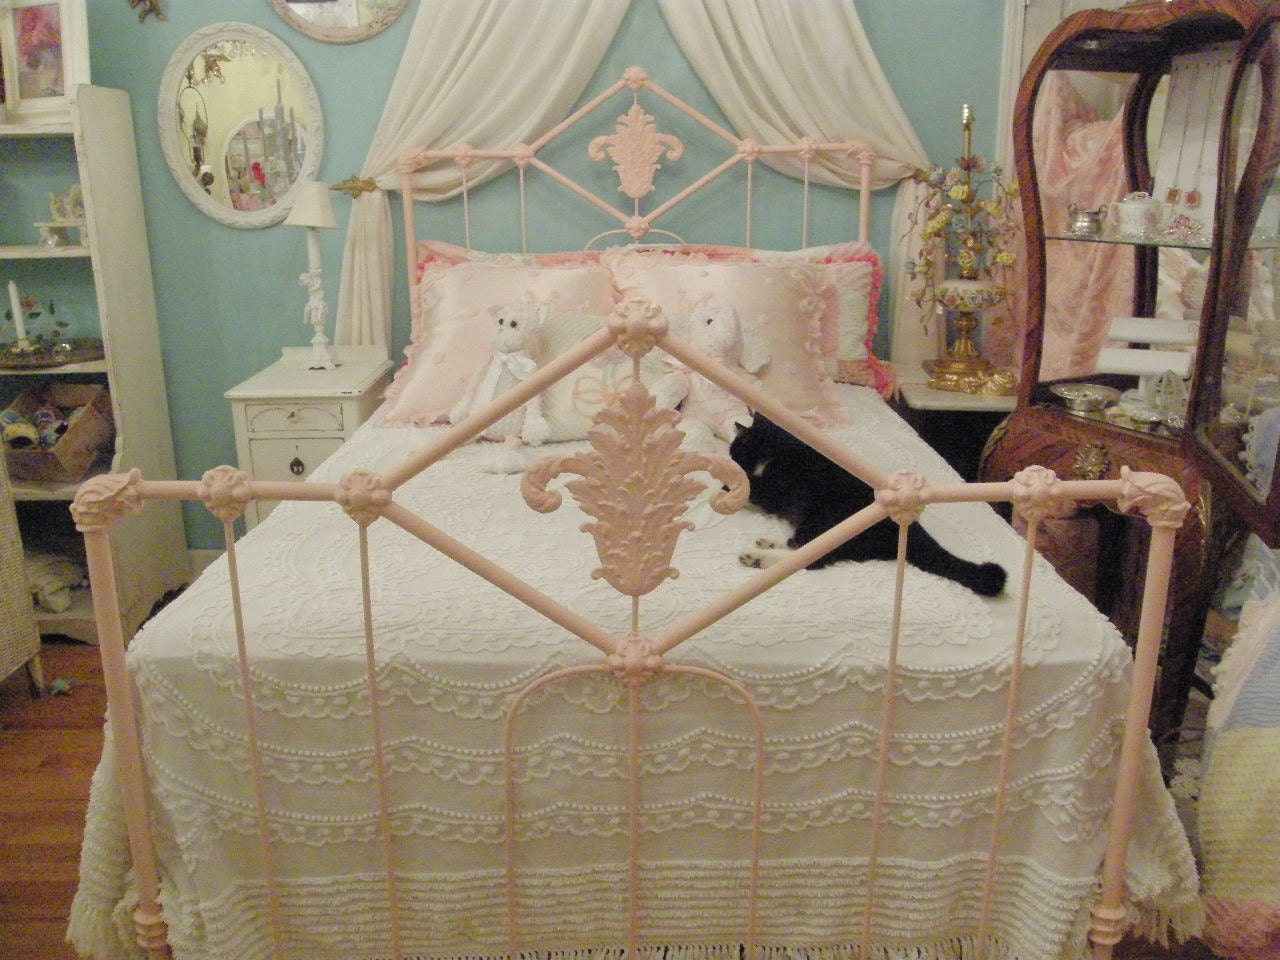 shabby chic antique bed frame pink wrought iron full double. Black Bedroom Furniture Sets. Home Design Ideas